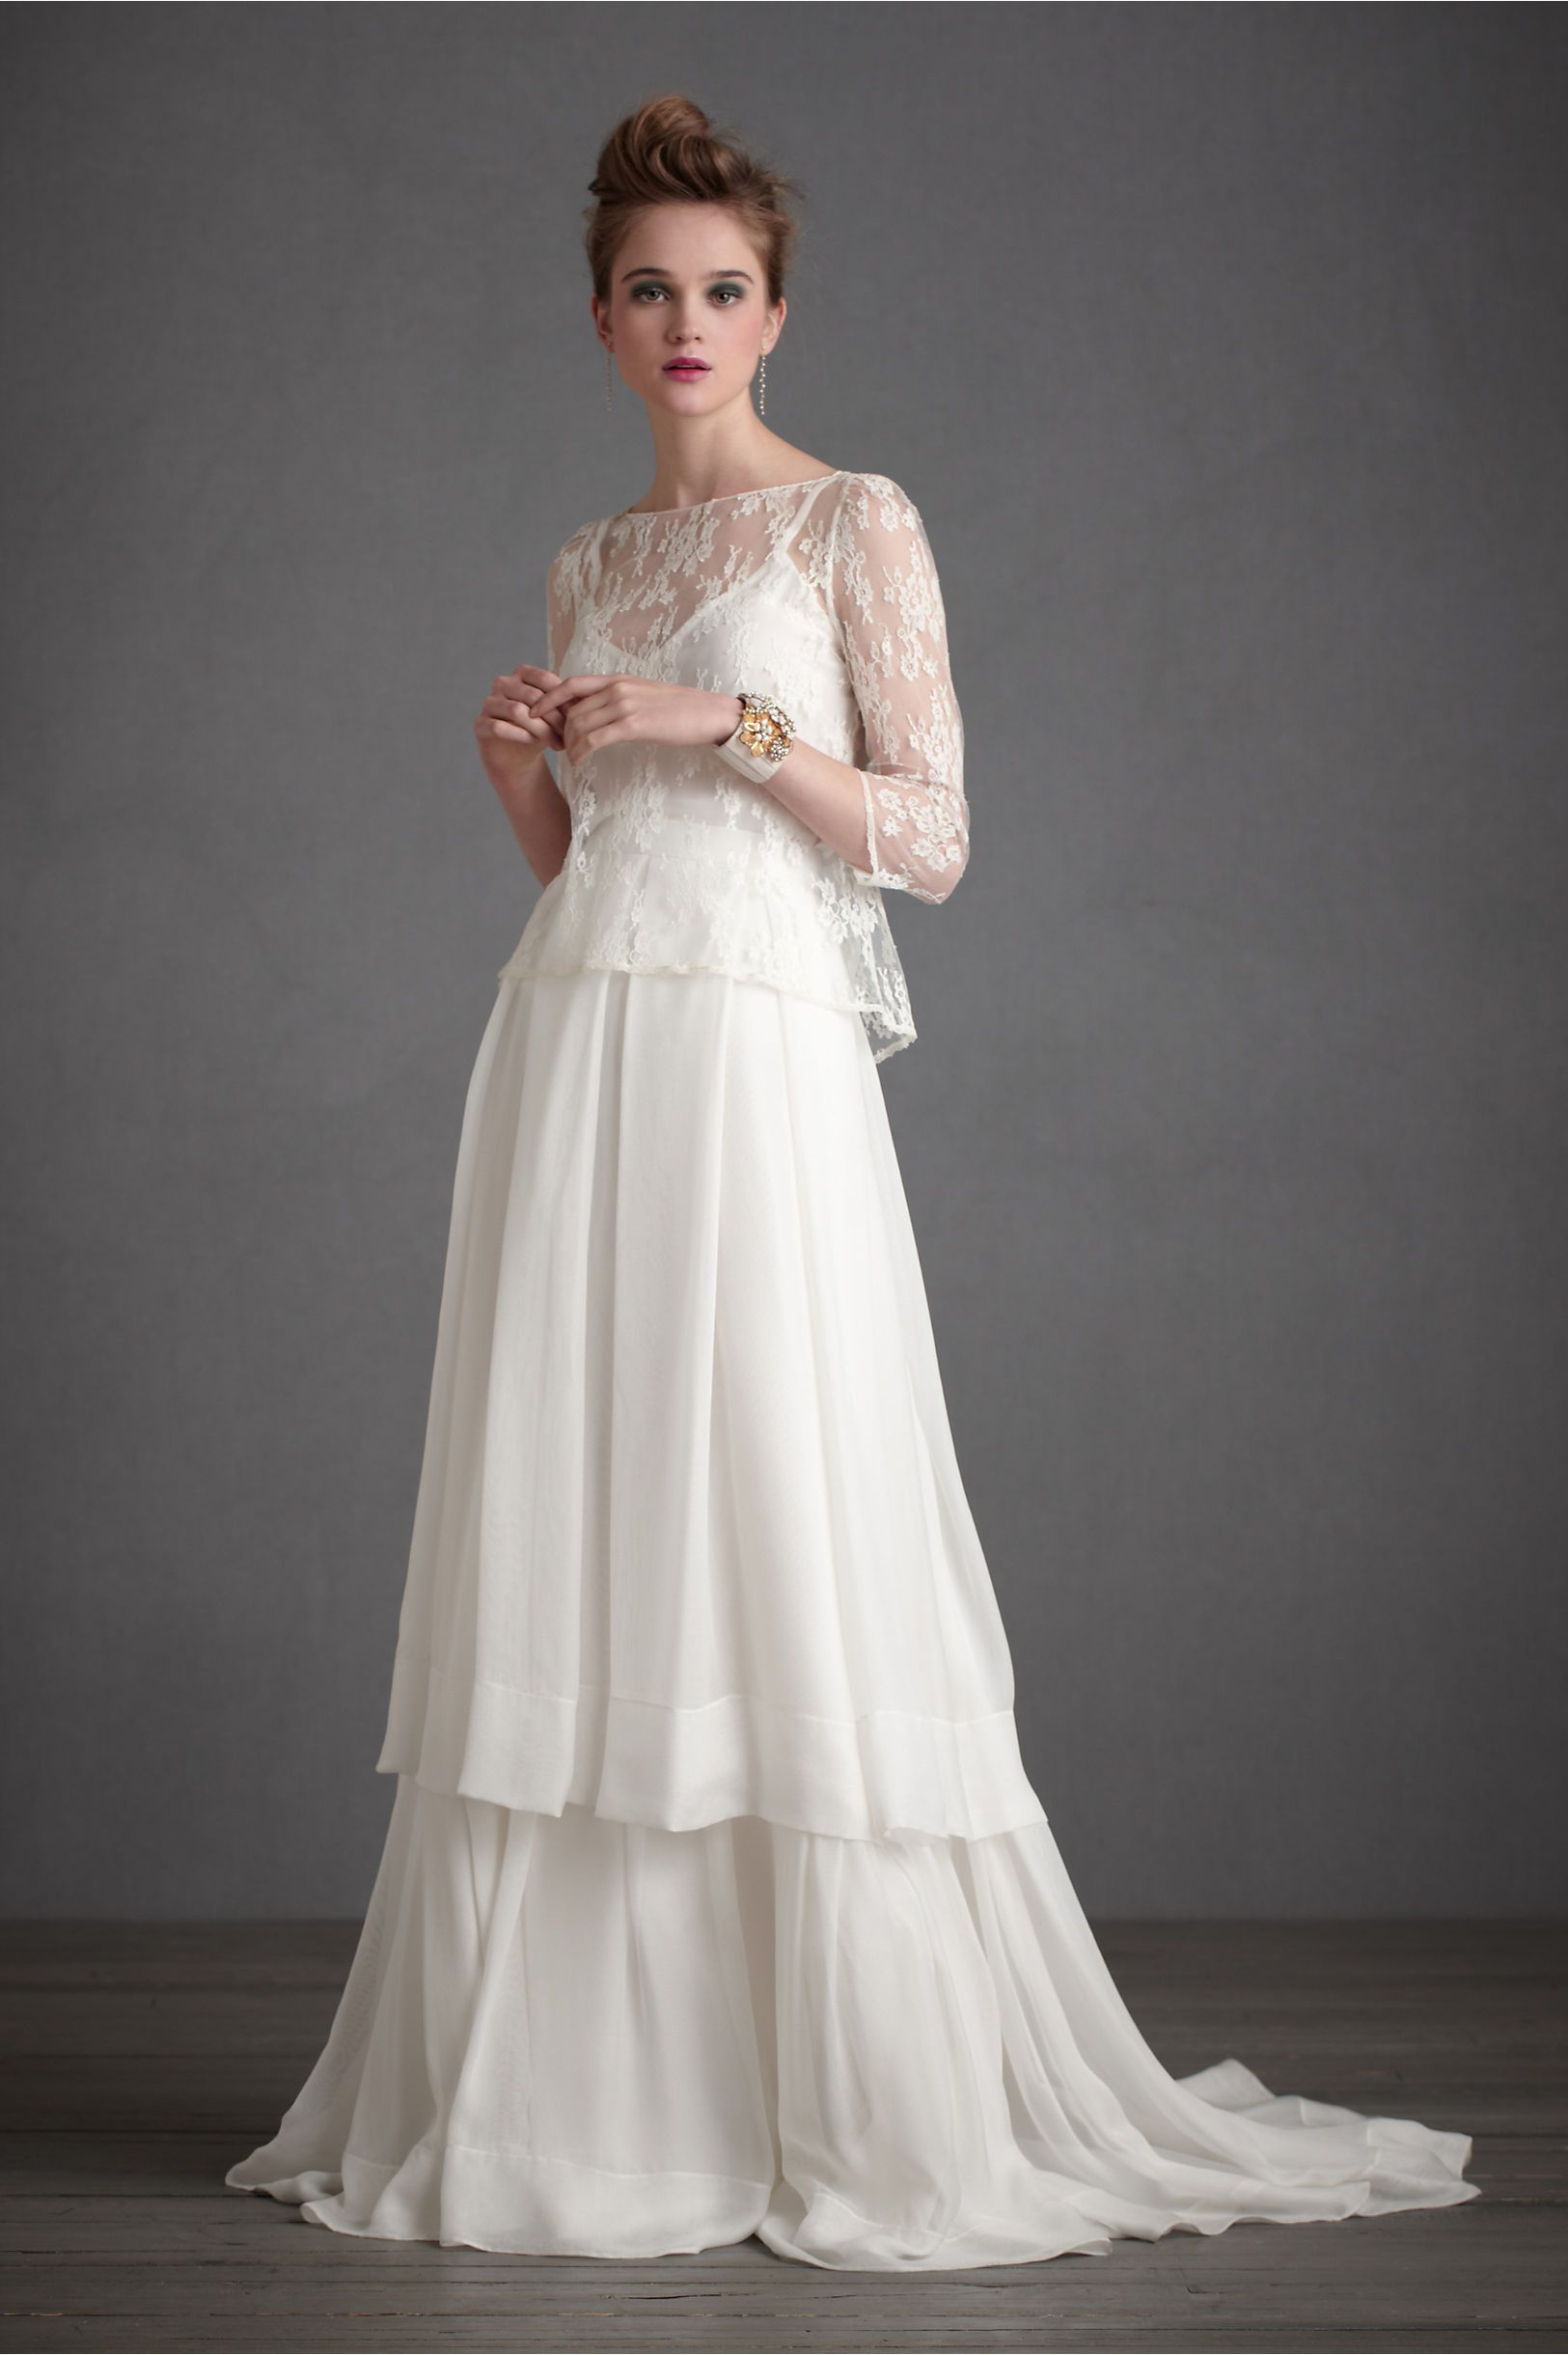 Long sleeved lace wedding dress  The Lazard Set from BHLDN  WEDDING dresses  Pinterest  Wedding